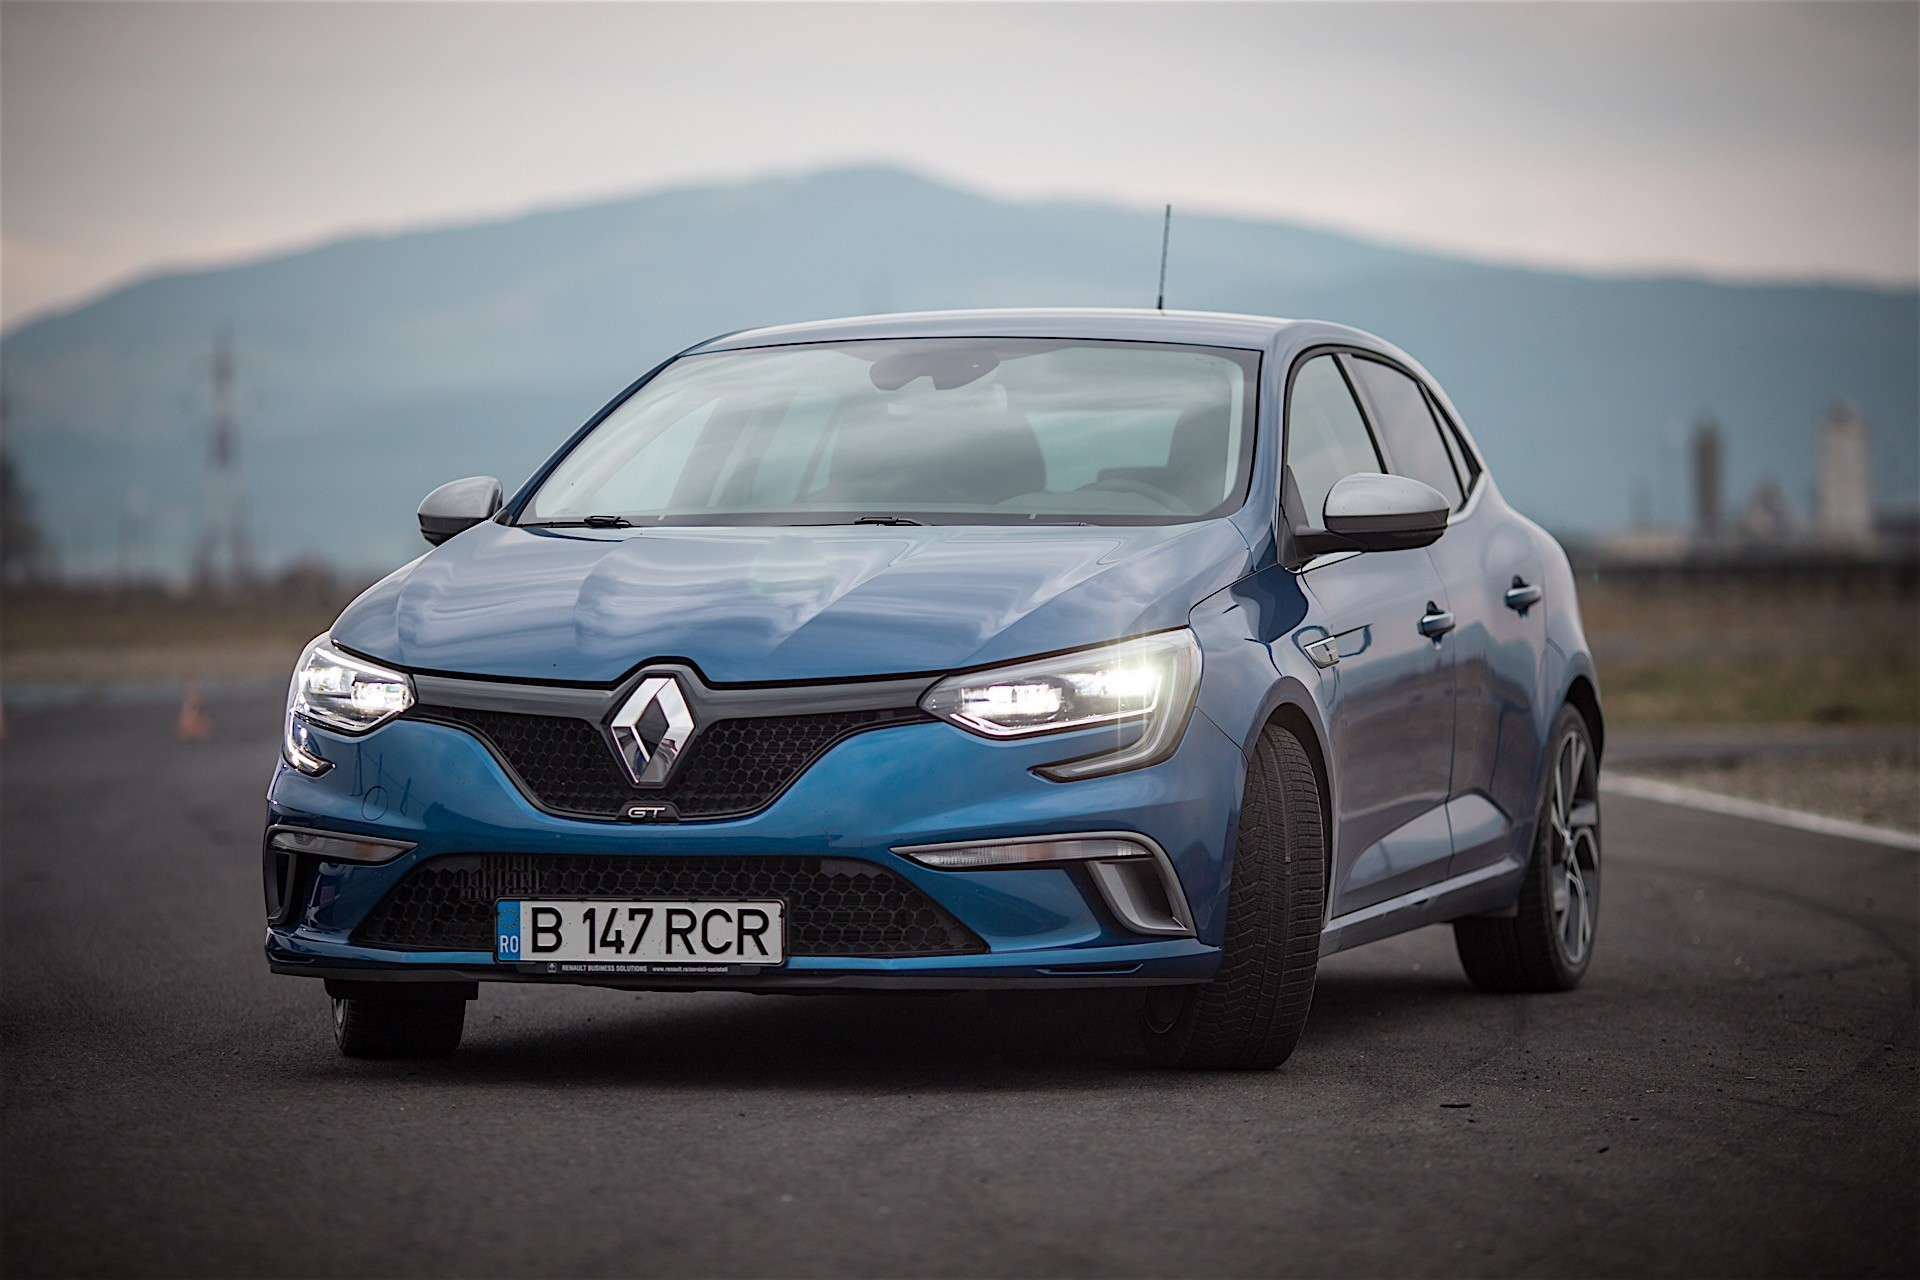 2016 renault megane gt costs 31 900 in france making it just 550 cheaper than megane rs. Black Bedroom Furniture Sets. Home Design Ideas